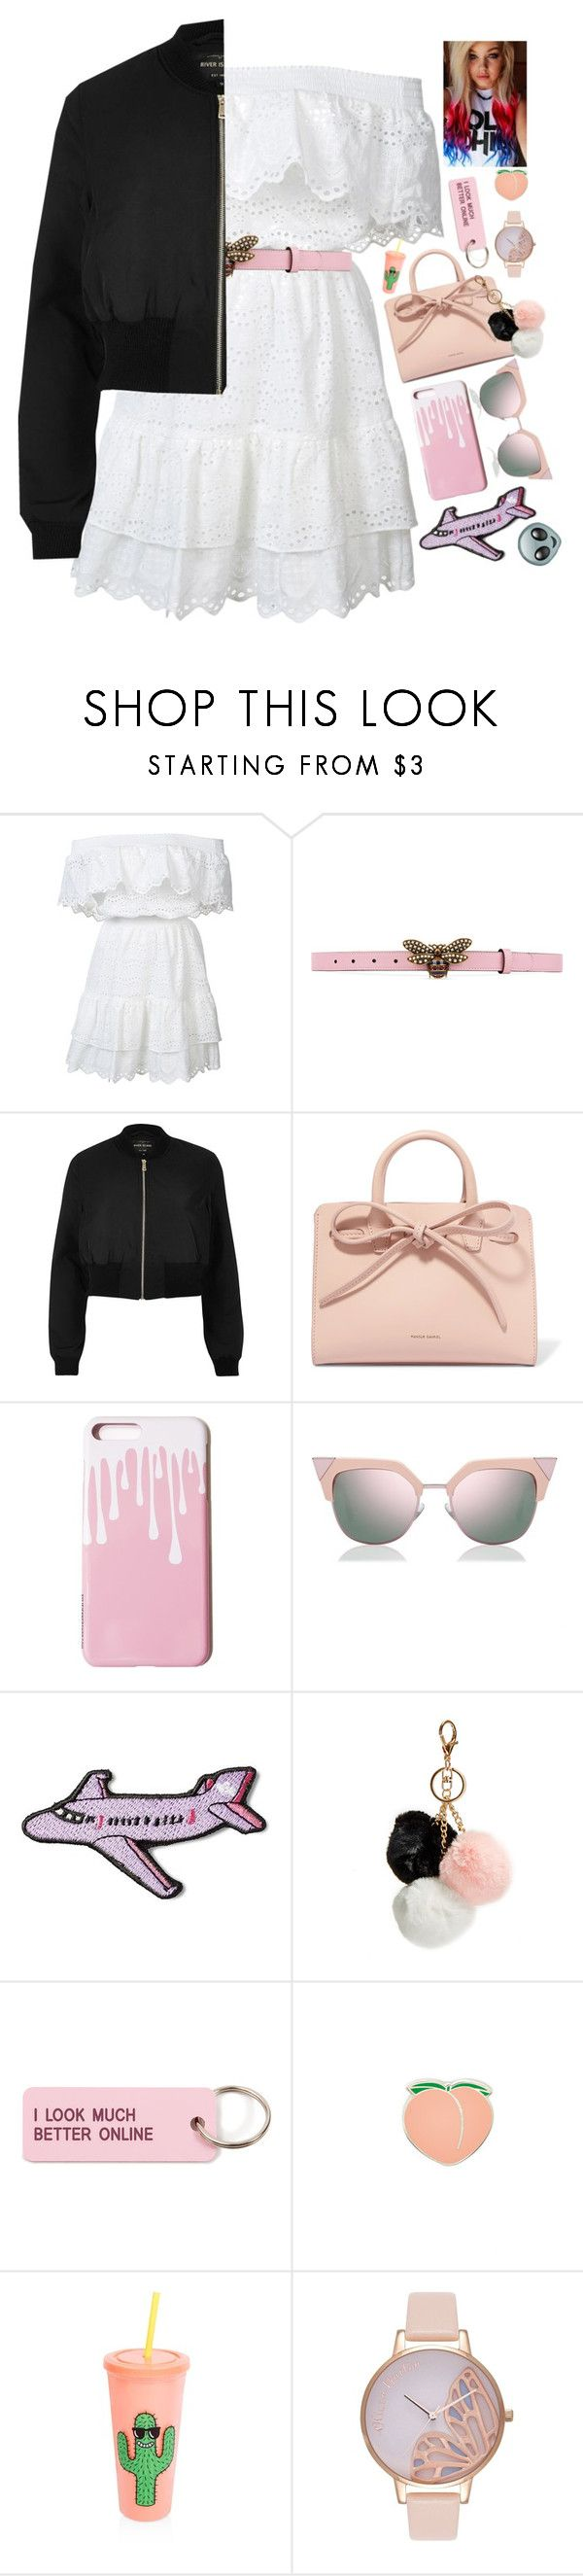 """""""Lauren Disco"""" by alyssajspolyvore ❤ liked on Polyvore featuring LoveShackFancy, Gucci, River Island, Mansur Gavriel, Fendi, Stoney Clover Lane, GUESS, Various Projects, PINTRILL and Sunnylife"""